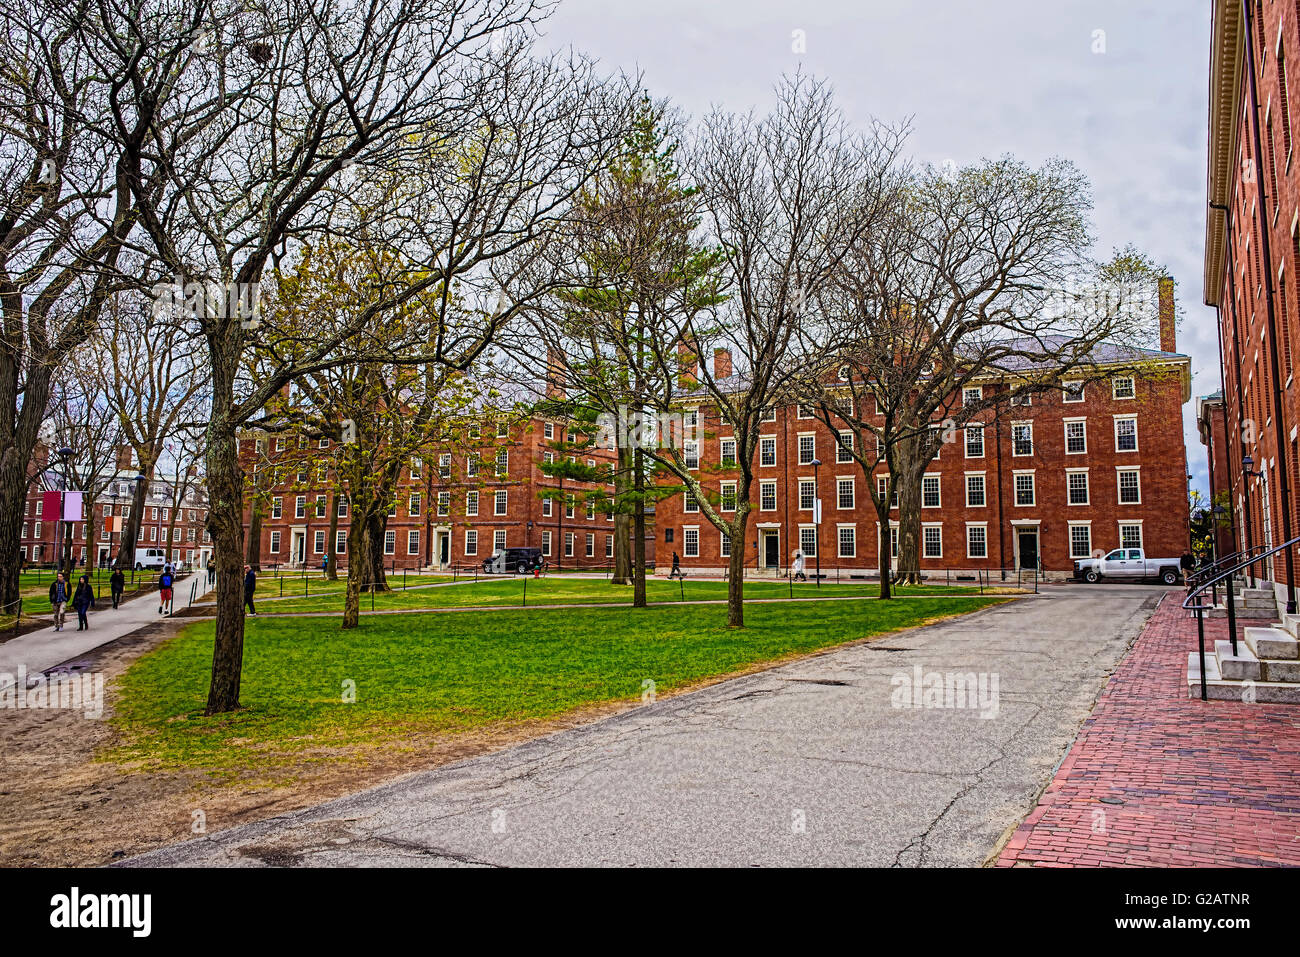 Cambridge, USA - April 29, 2015: Hollis Hall and Stoughton Hall at Harvard Yard of Harvard University, Massachusetts, - Stock Image